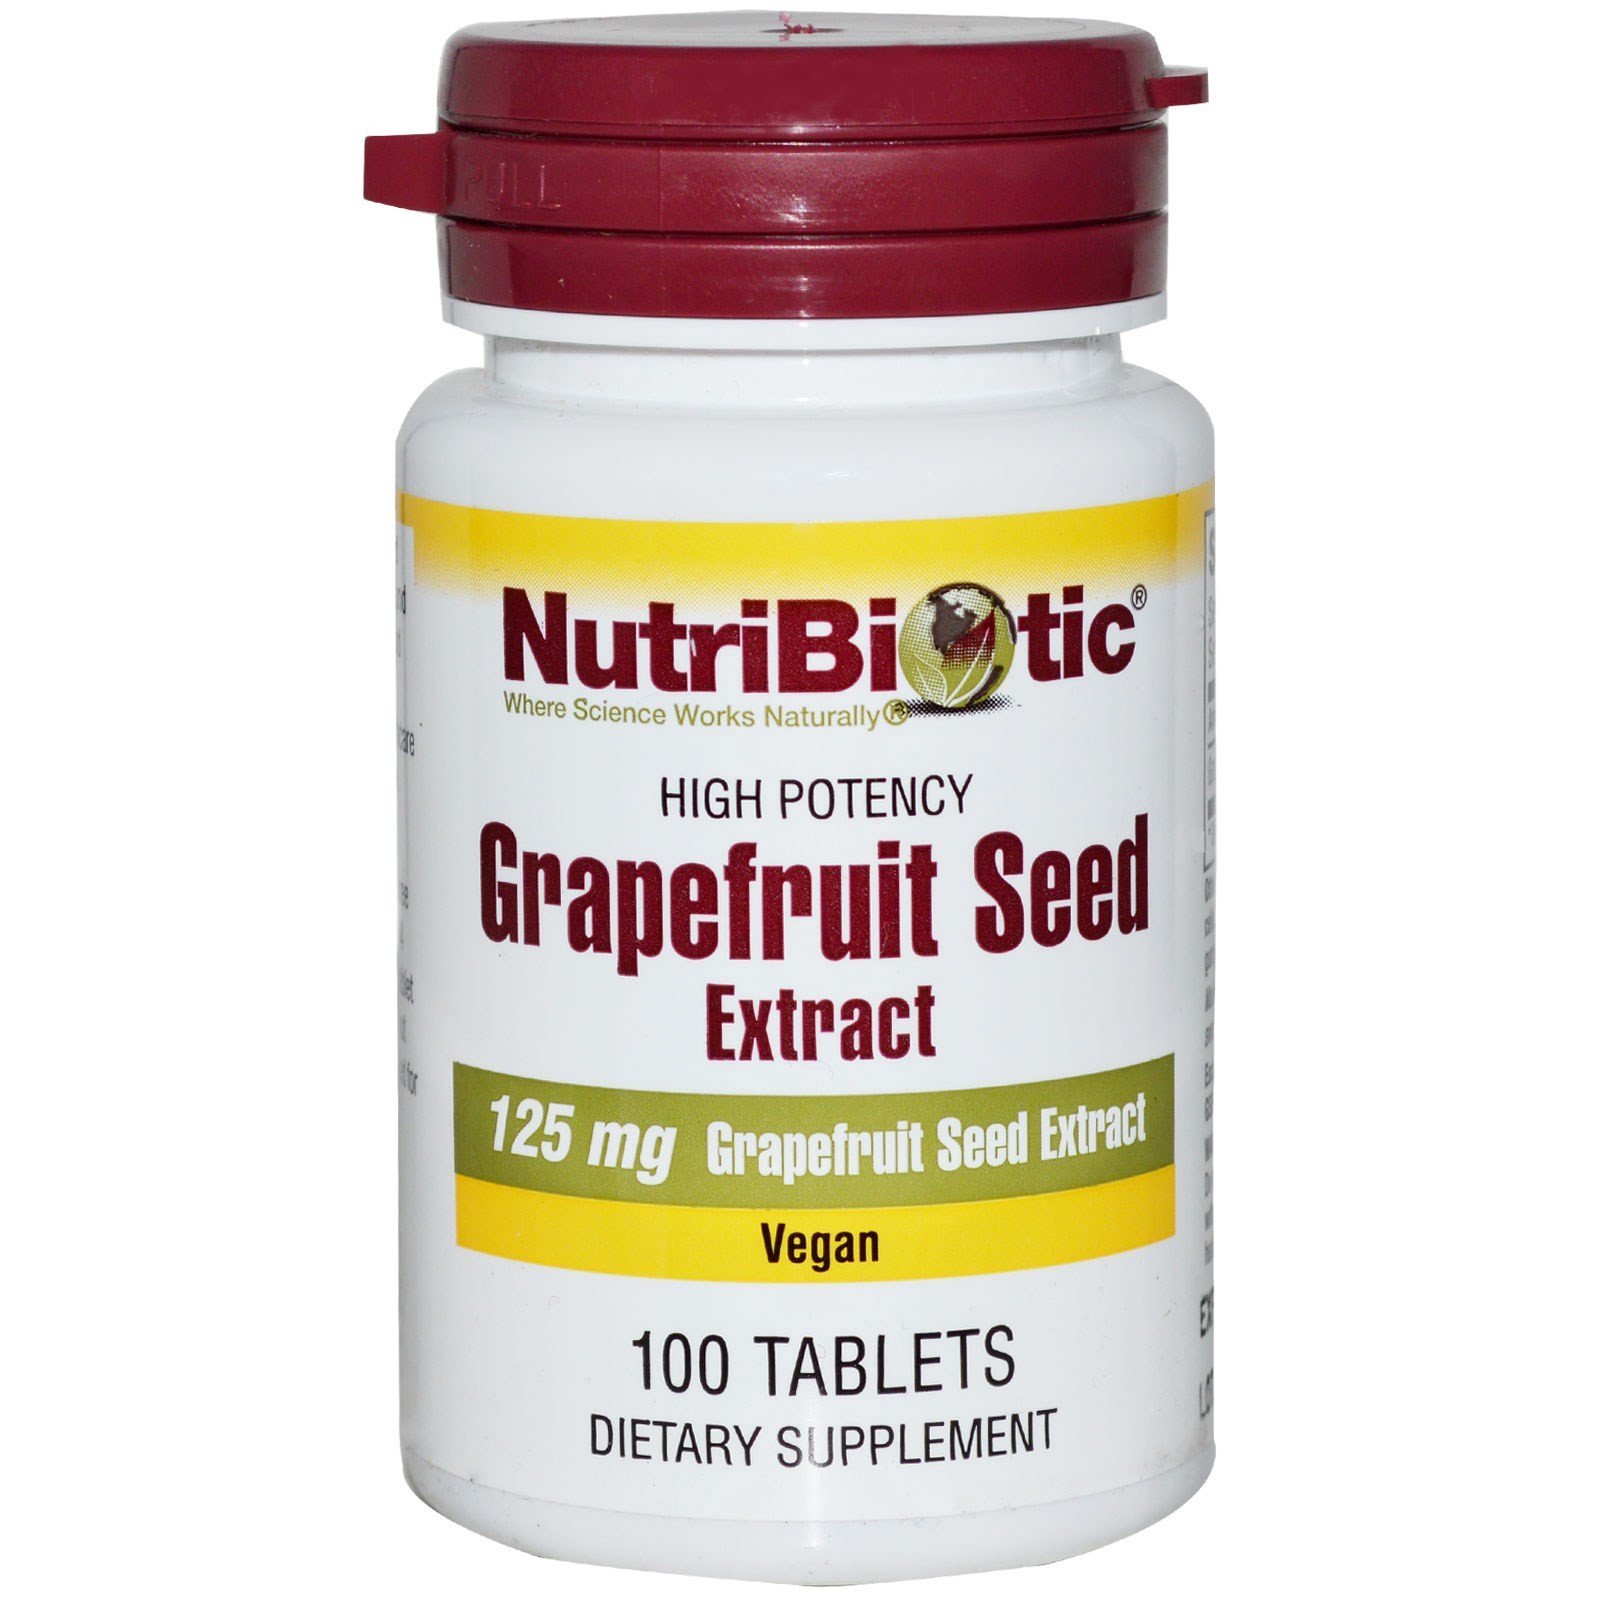 Nutribiotic Grapefruit Seed Extract High Potency, 125mg, 100 tabs